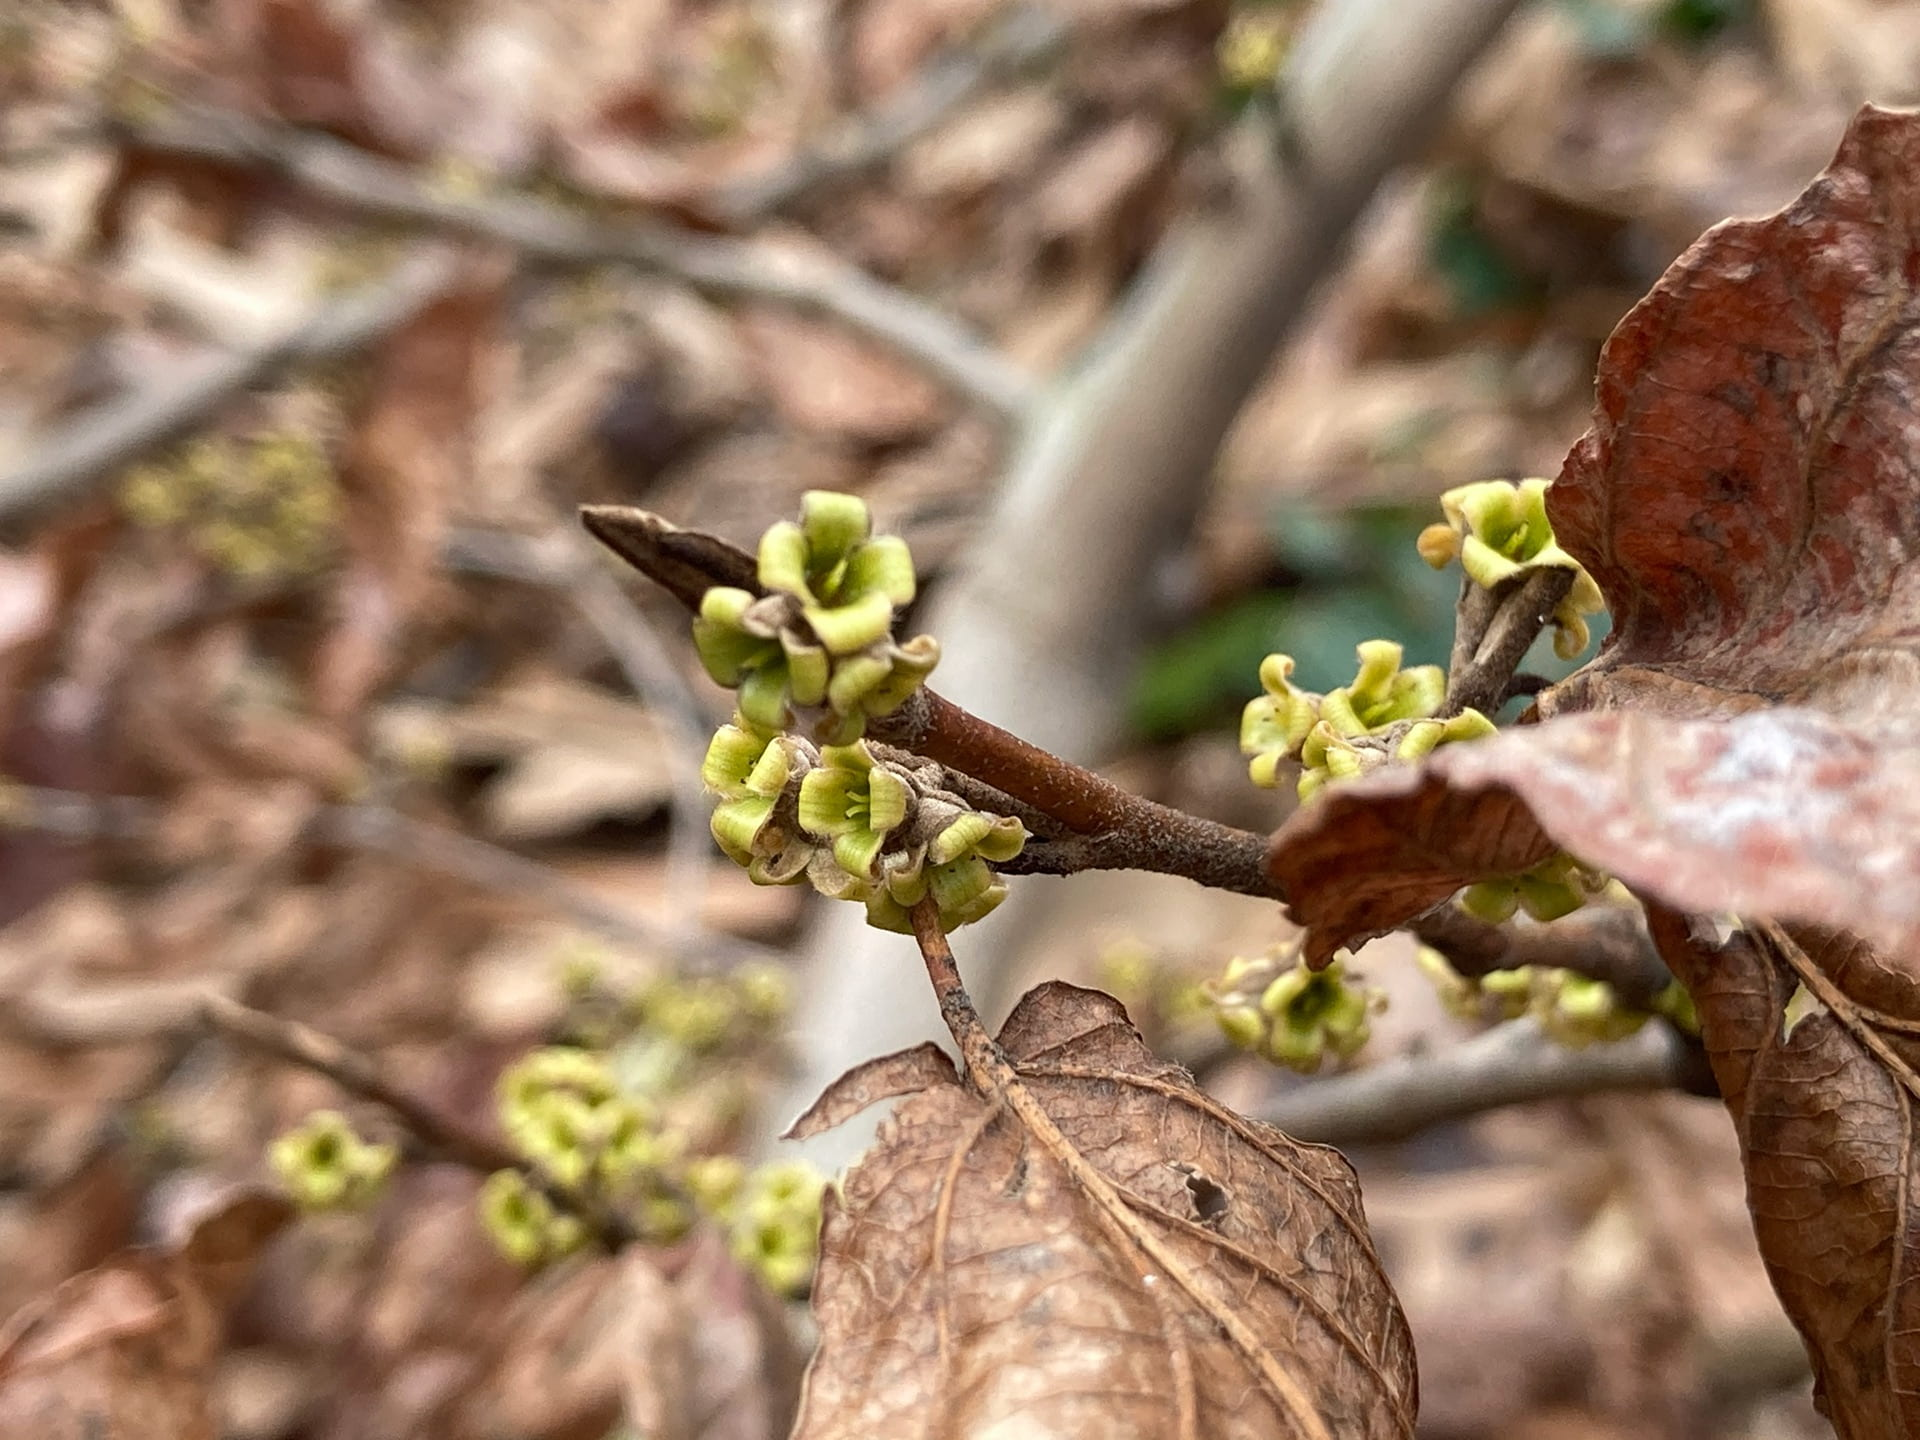 After the petals are gone, the sepals remain for the winter on Hamamelis virginiana.